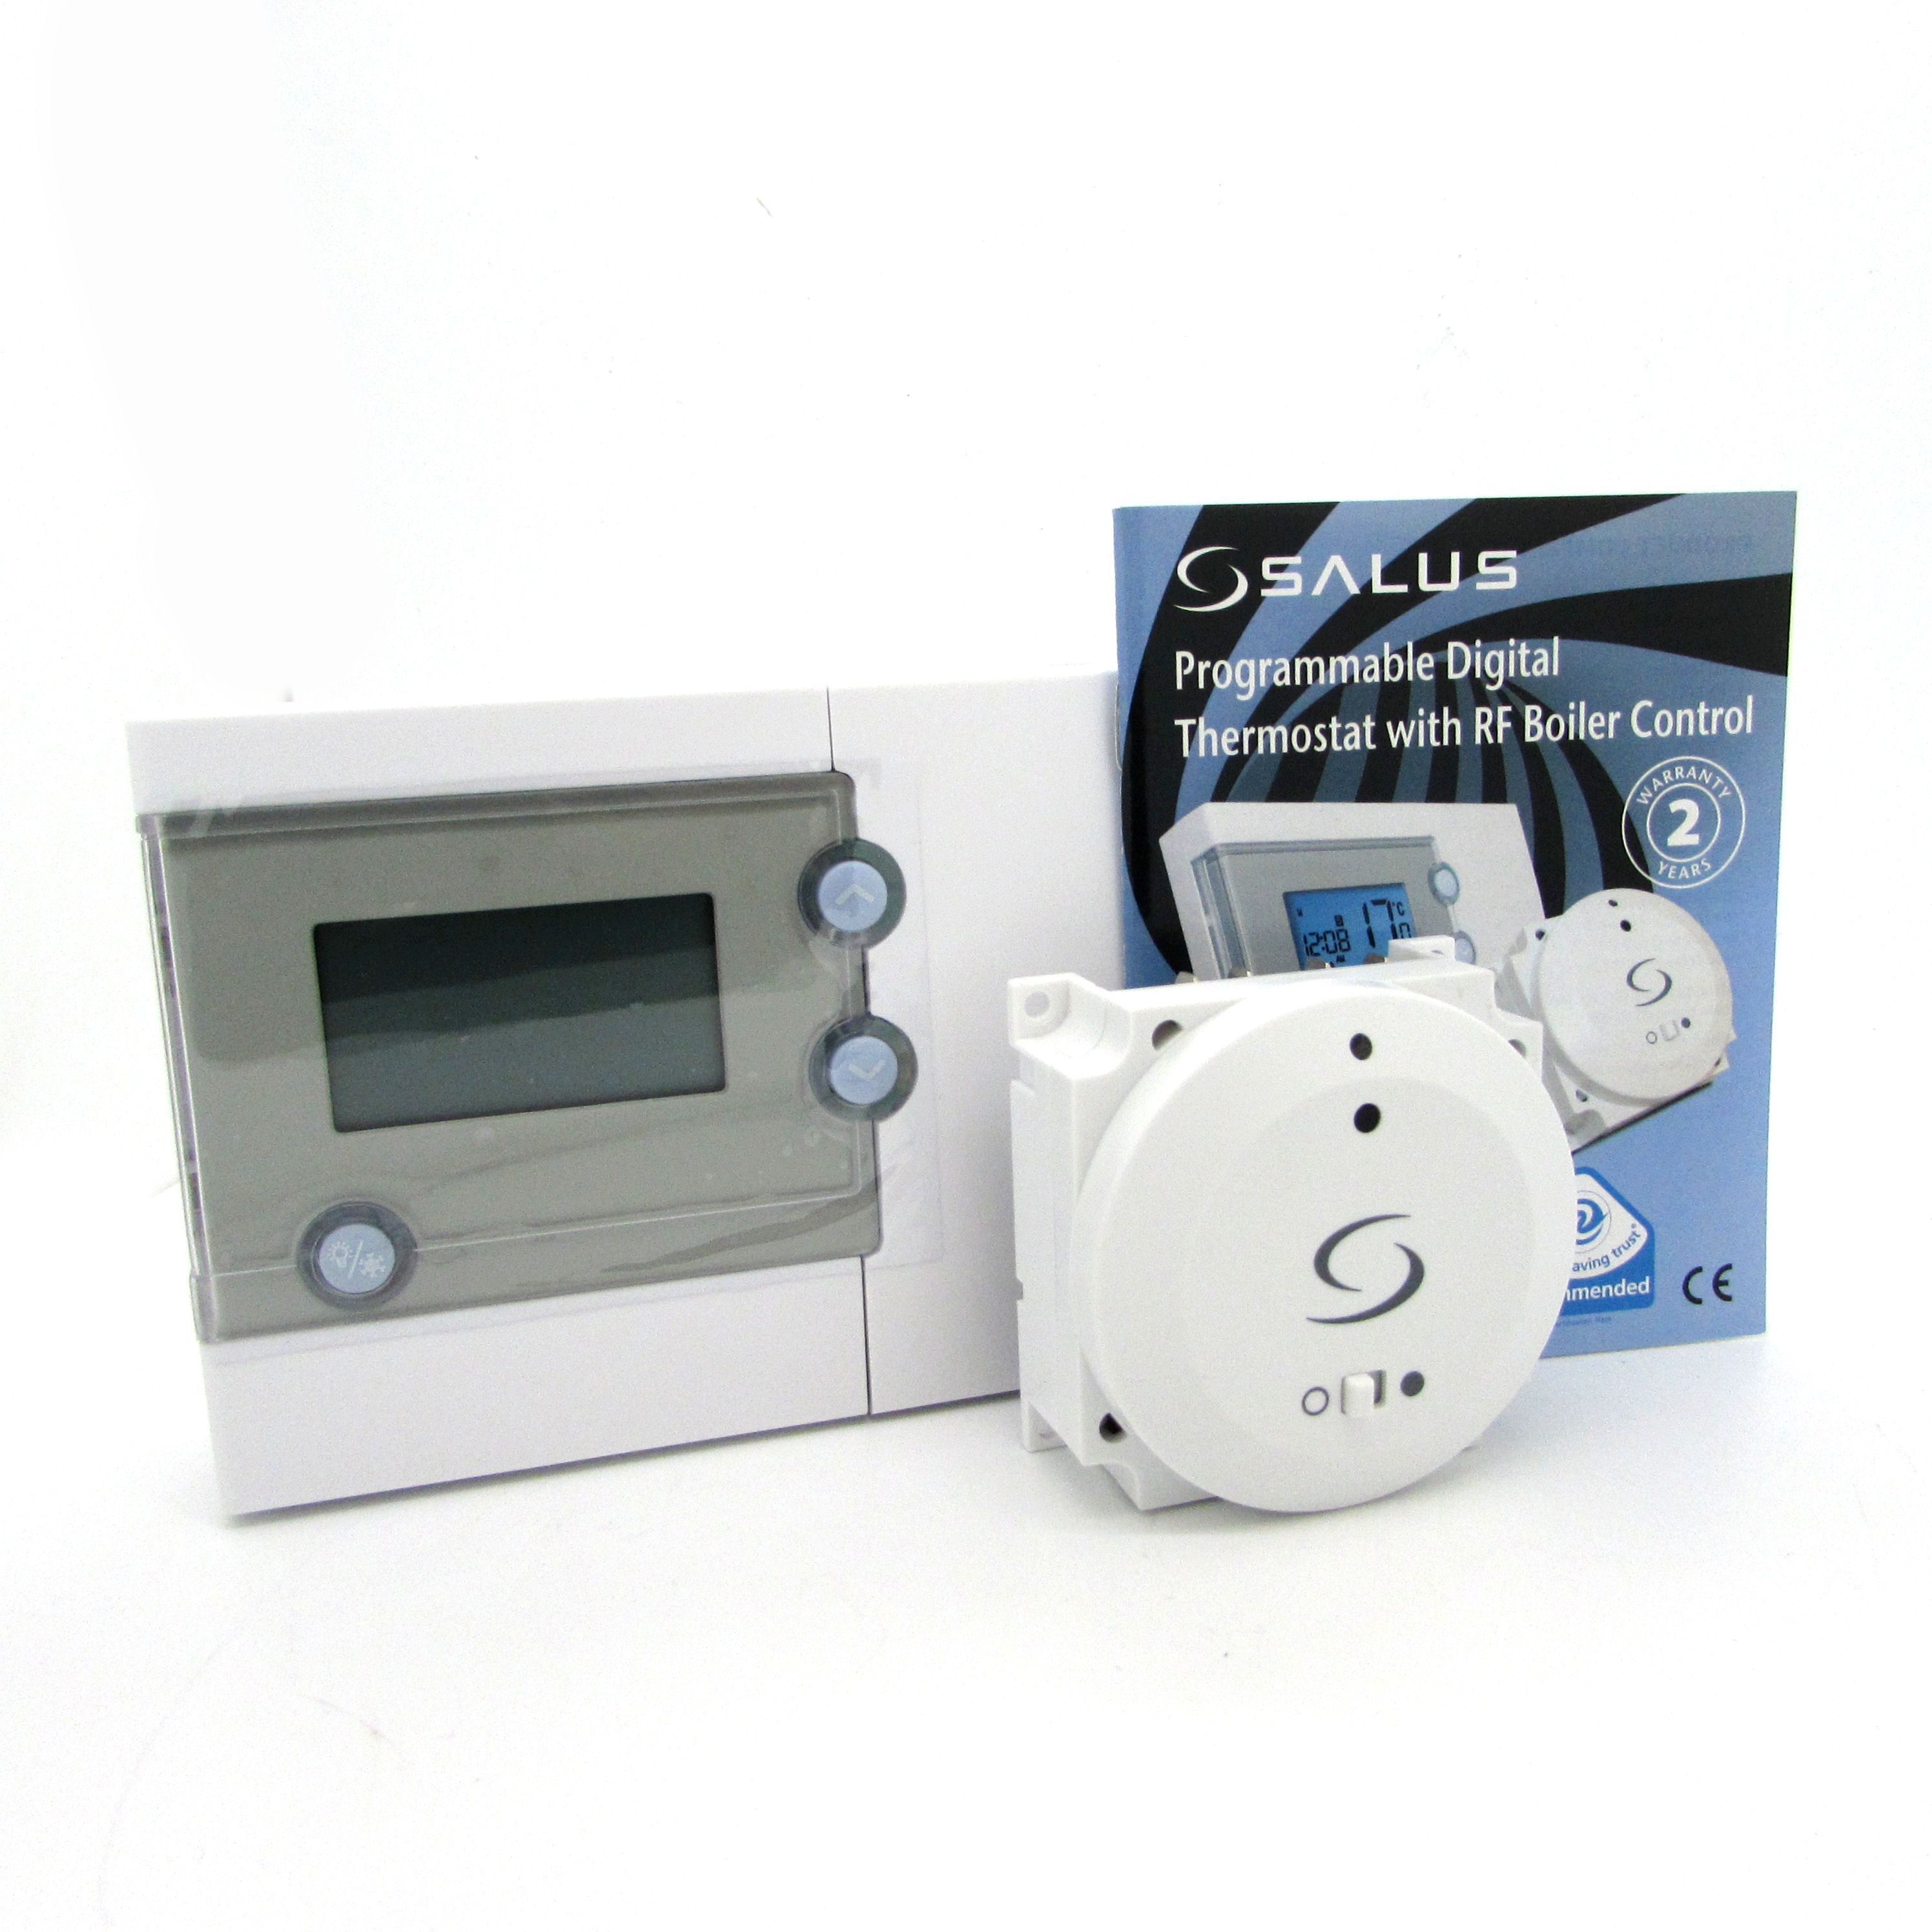 Salus RT500BC Combi Boiler Digital Programmable Wireless Thermostat